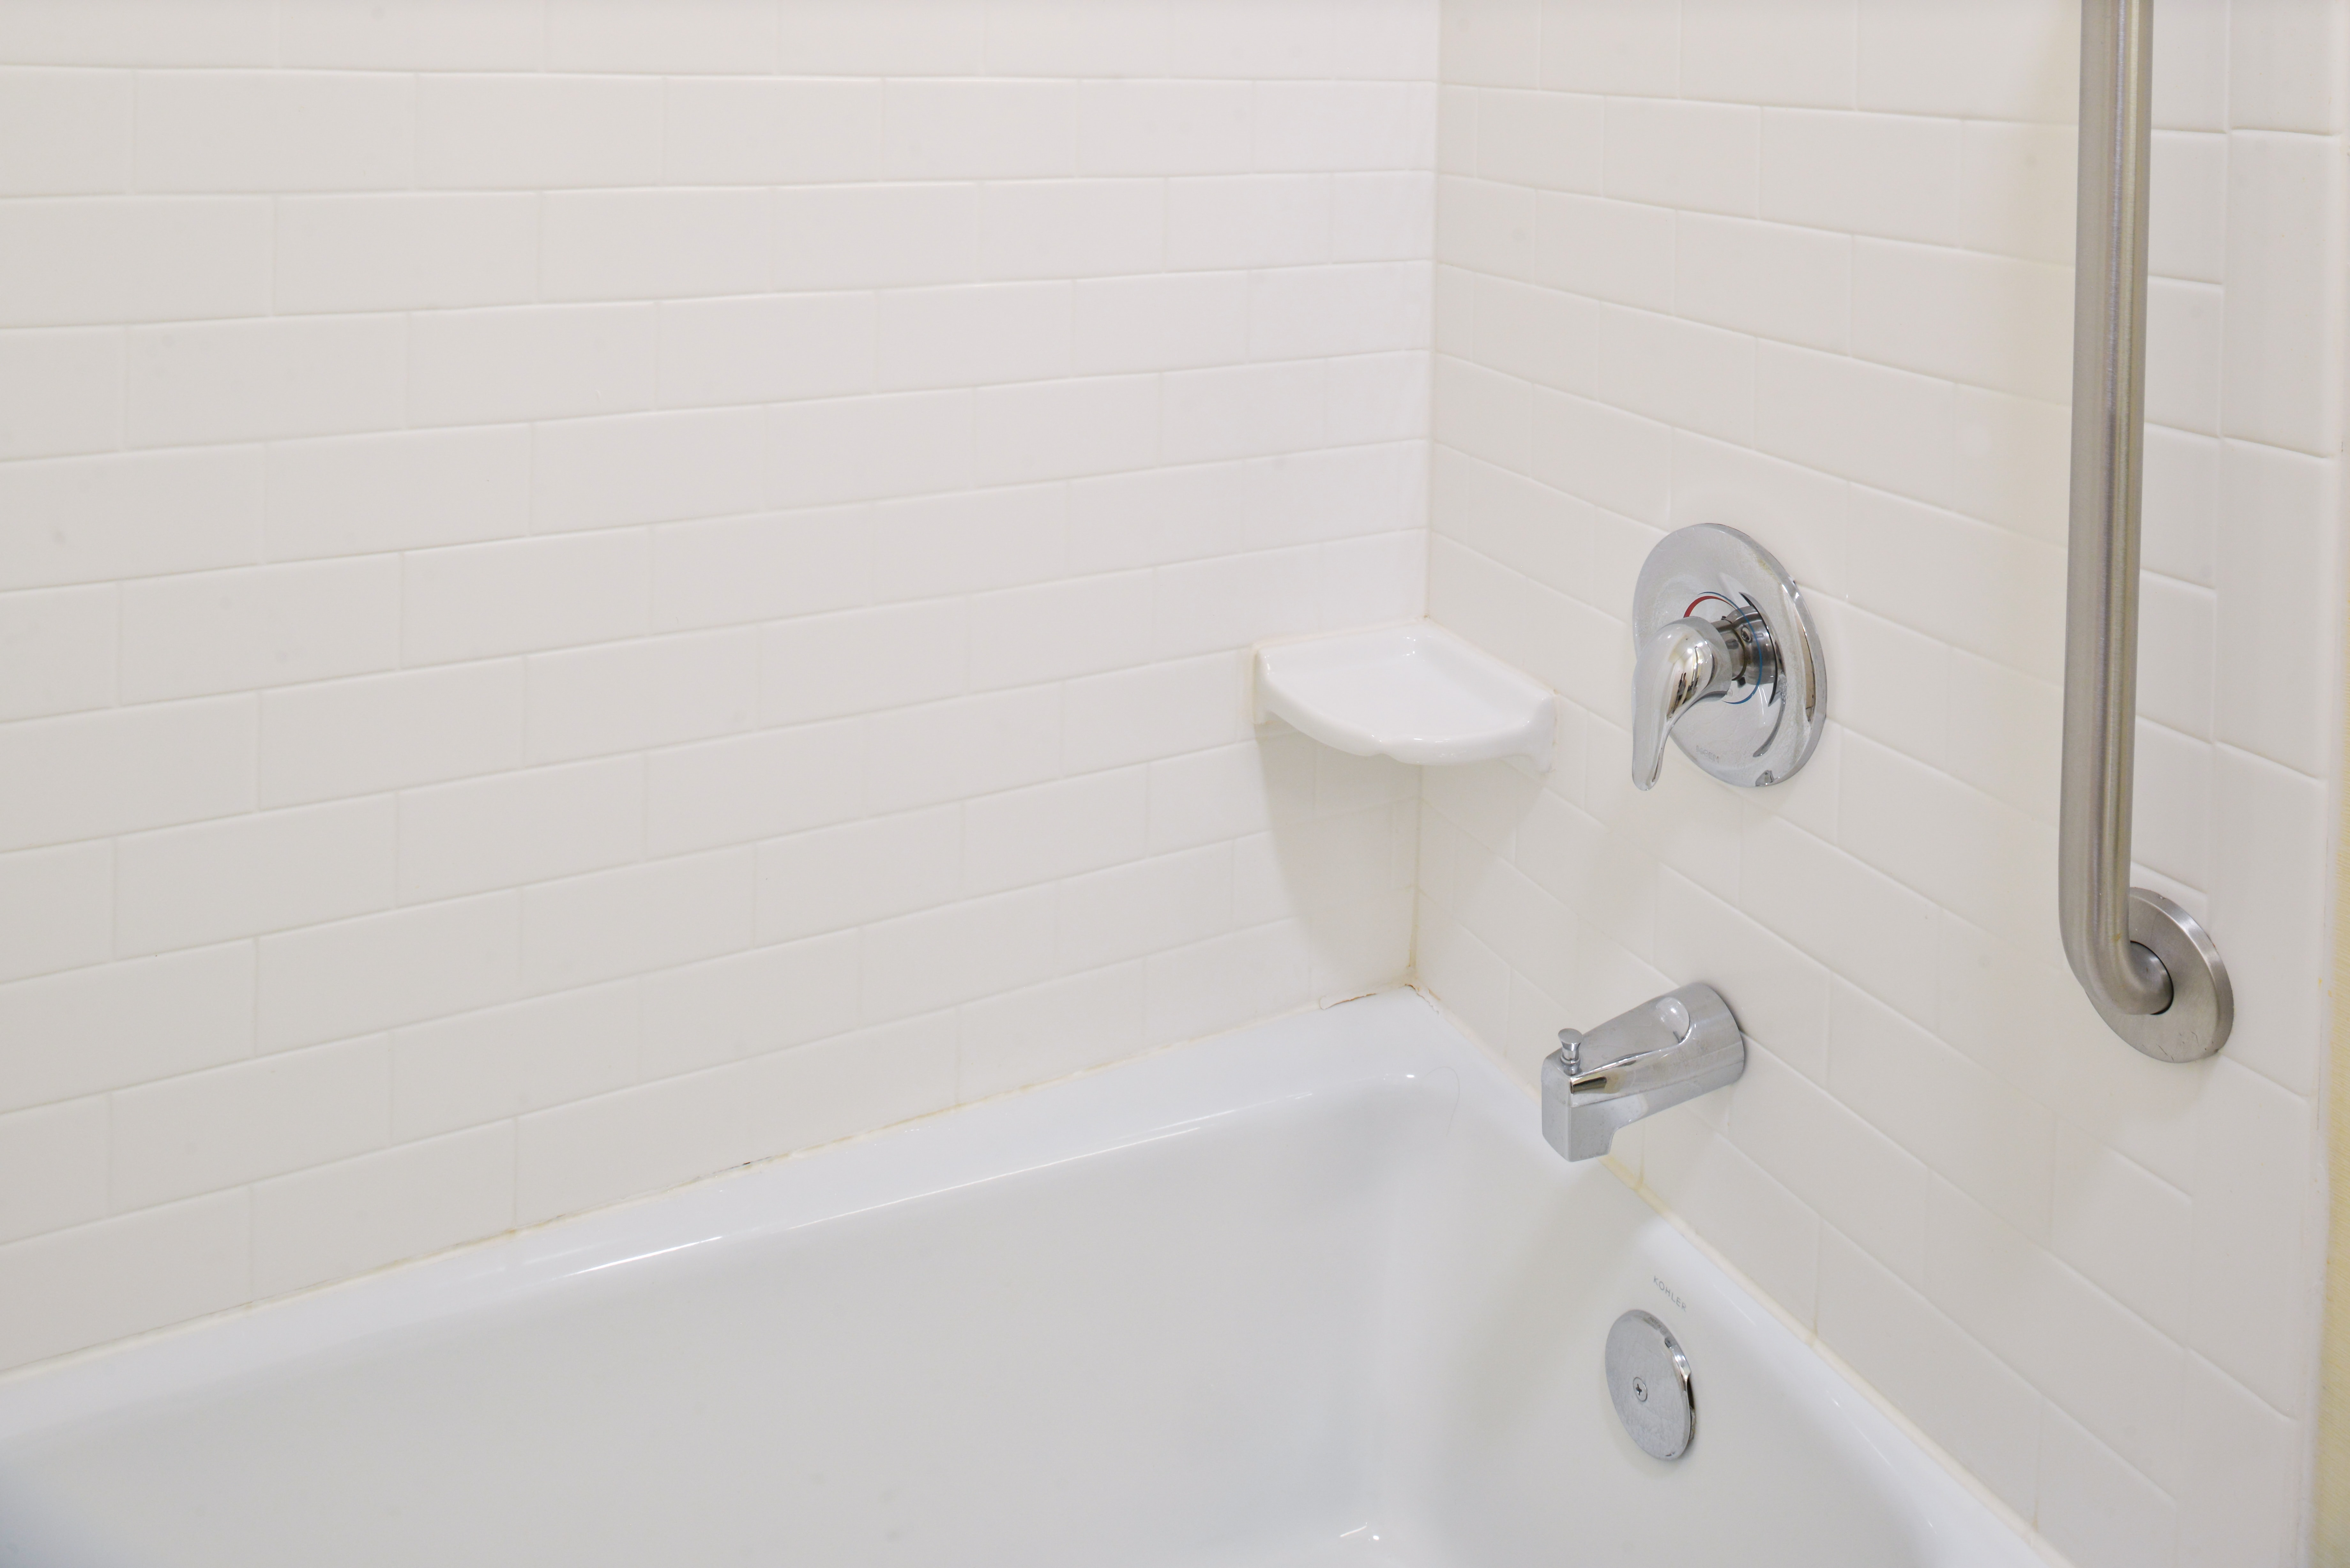 https://www.hotelsbyday.com/_data/default-hotel_image/3/15128/fis-cidcr-bathroom6.jpg